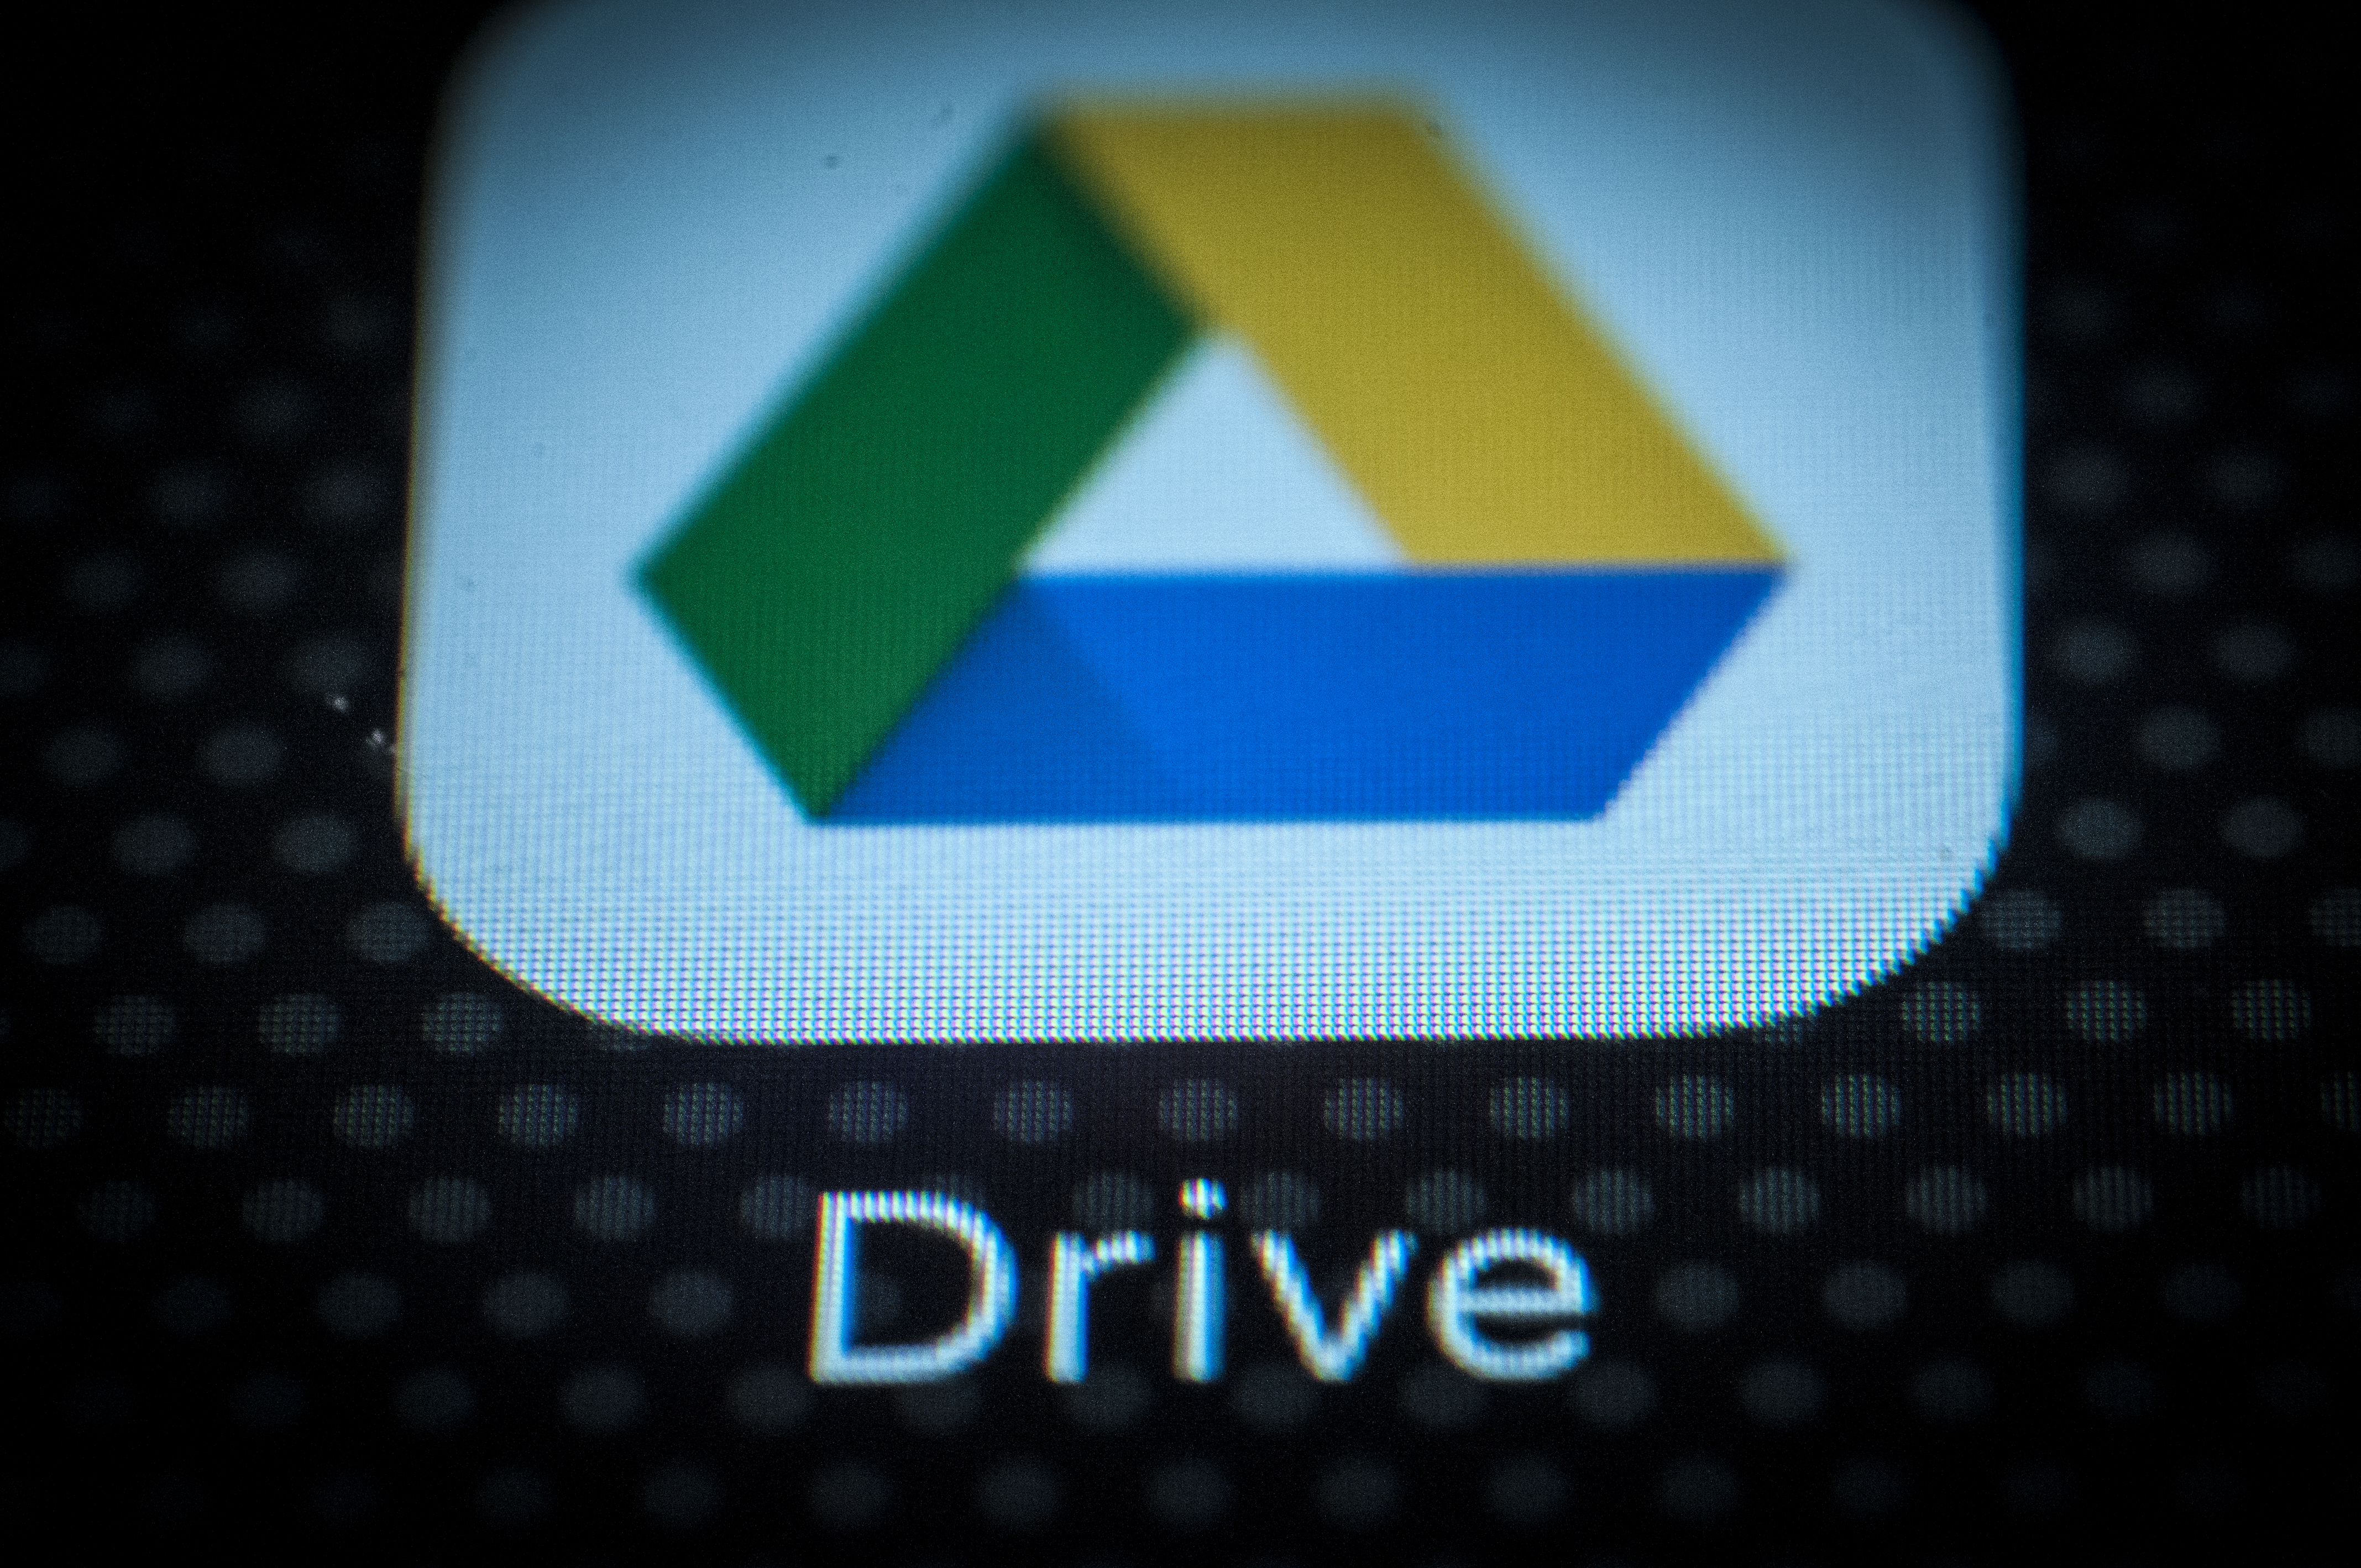 Italy's Competition Authority Opens Probe Into Google, Apple, Dropbox Cloud Services 09/08/2020